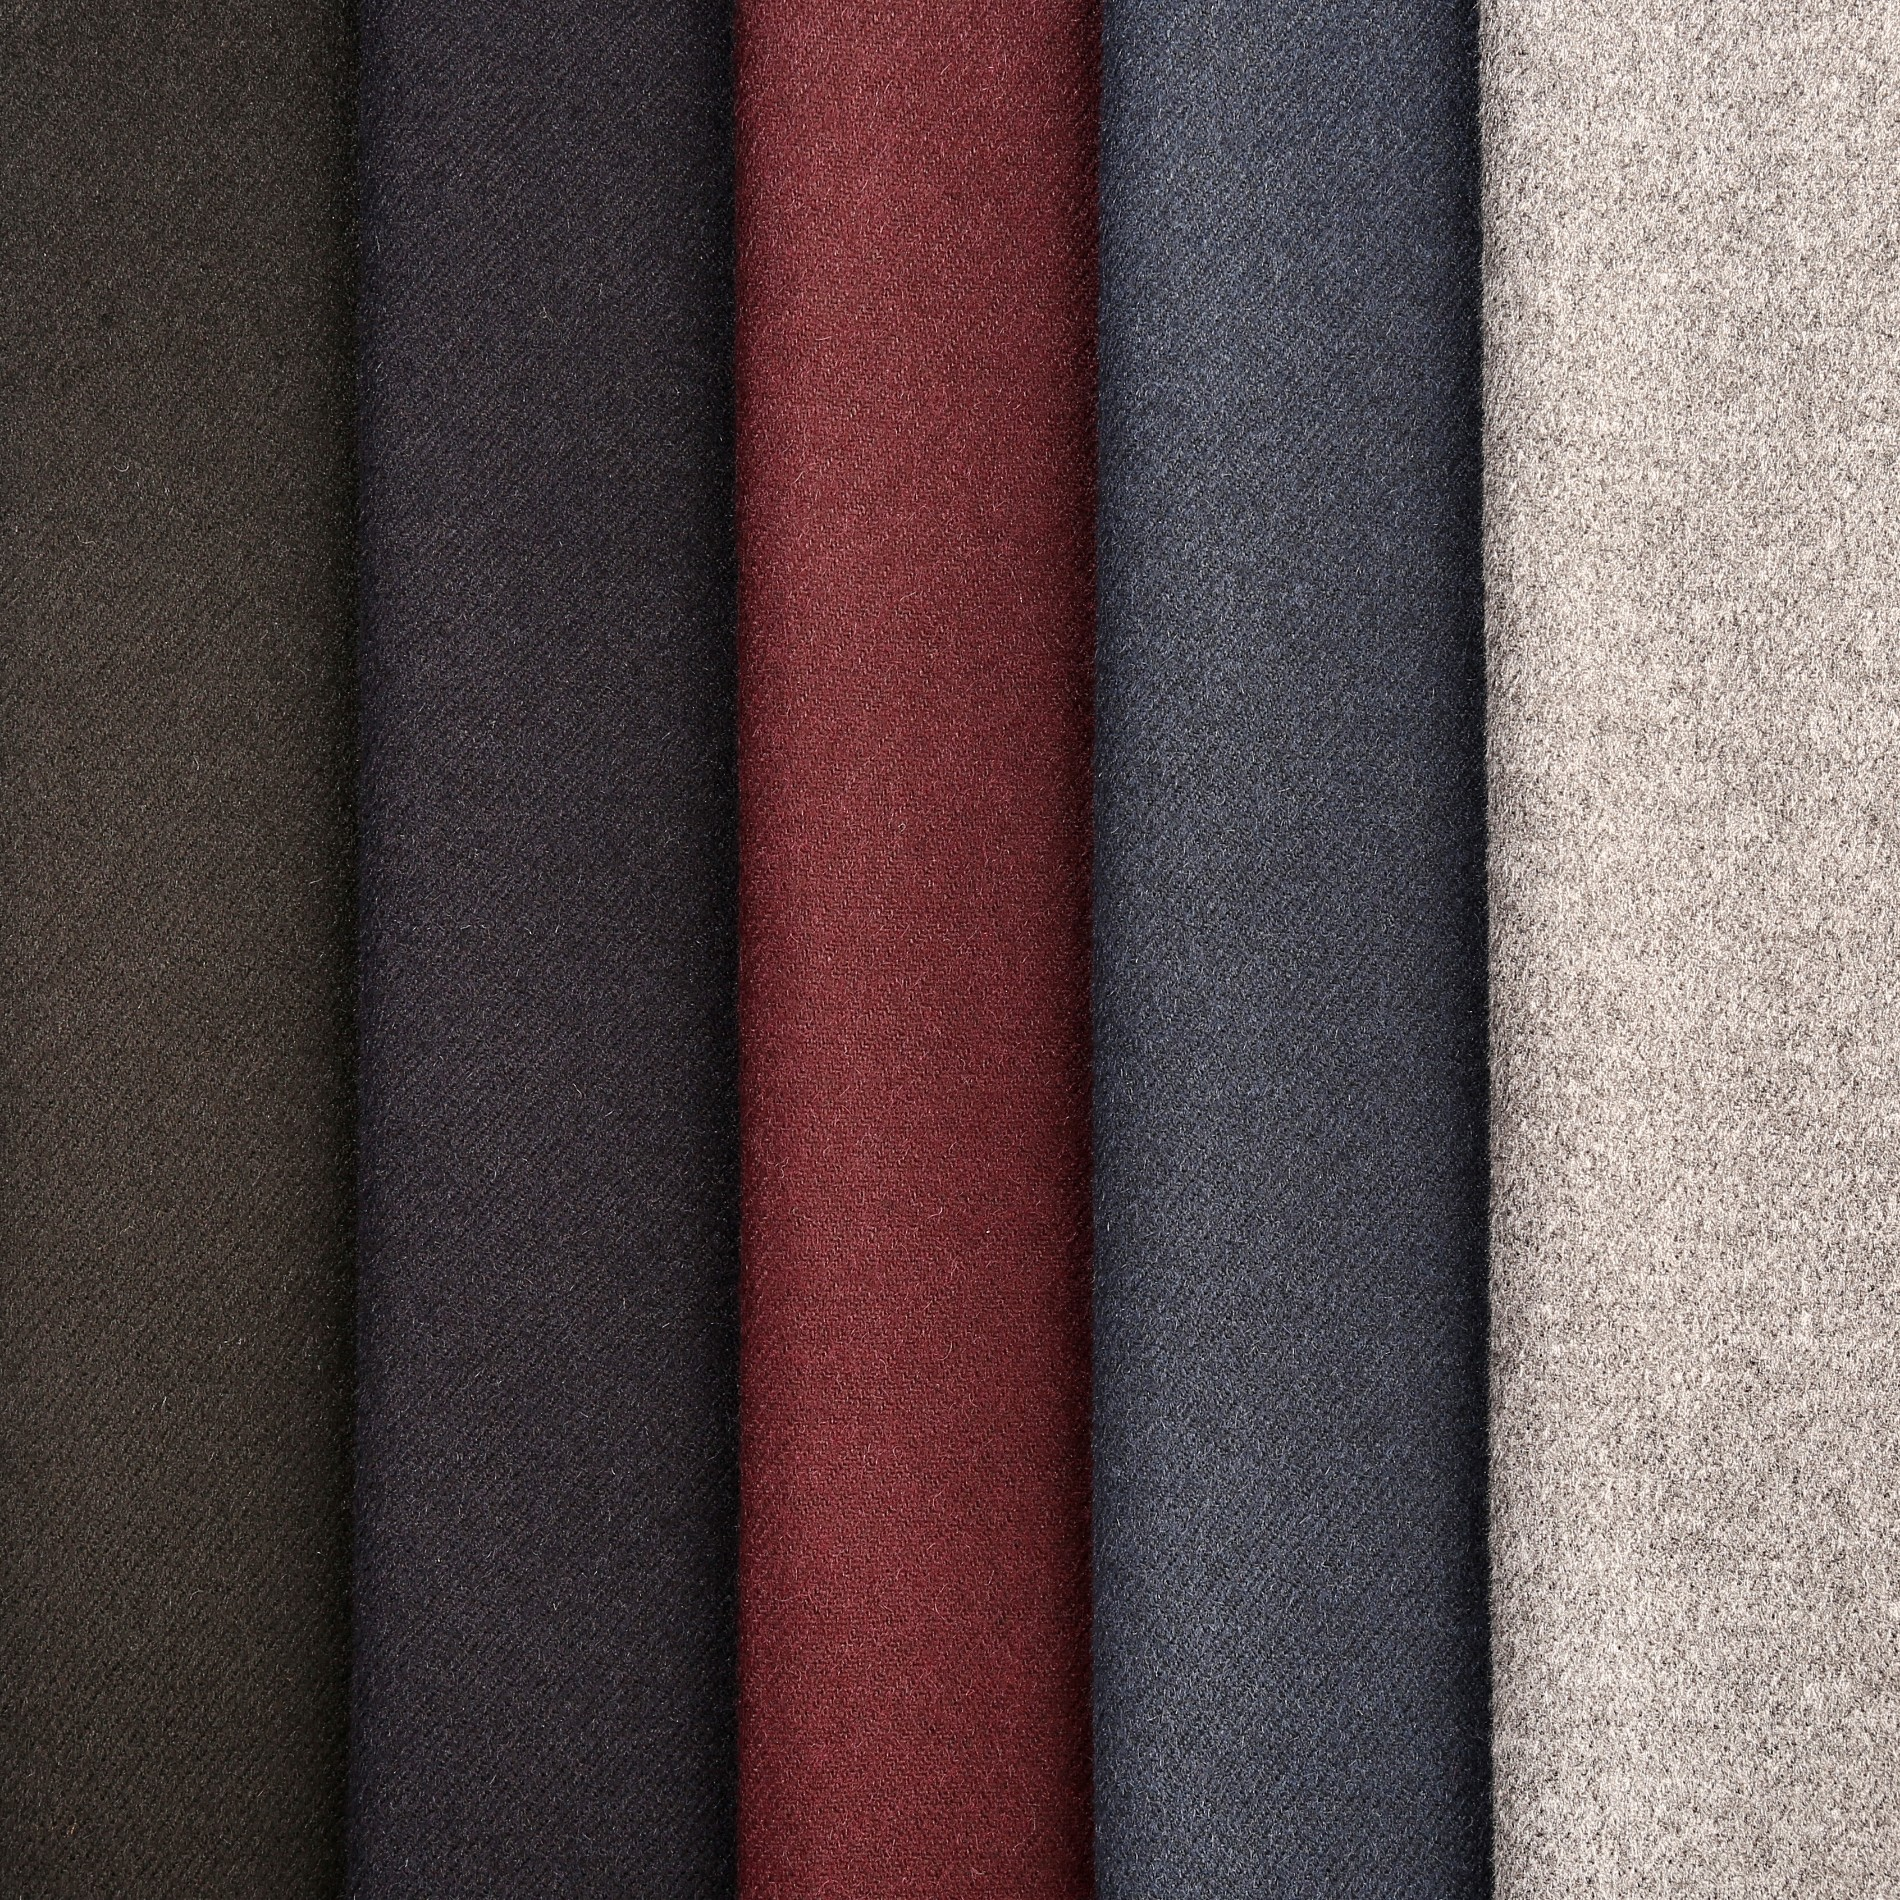 Wool Melton Fabric Colors Manufacturers, Wool Melton Fabric Colors Factory, Supply Wool Melton Fabric Colors